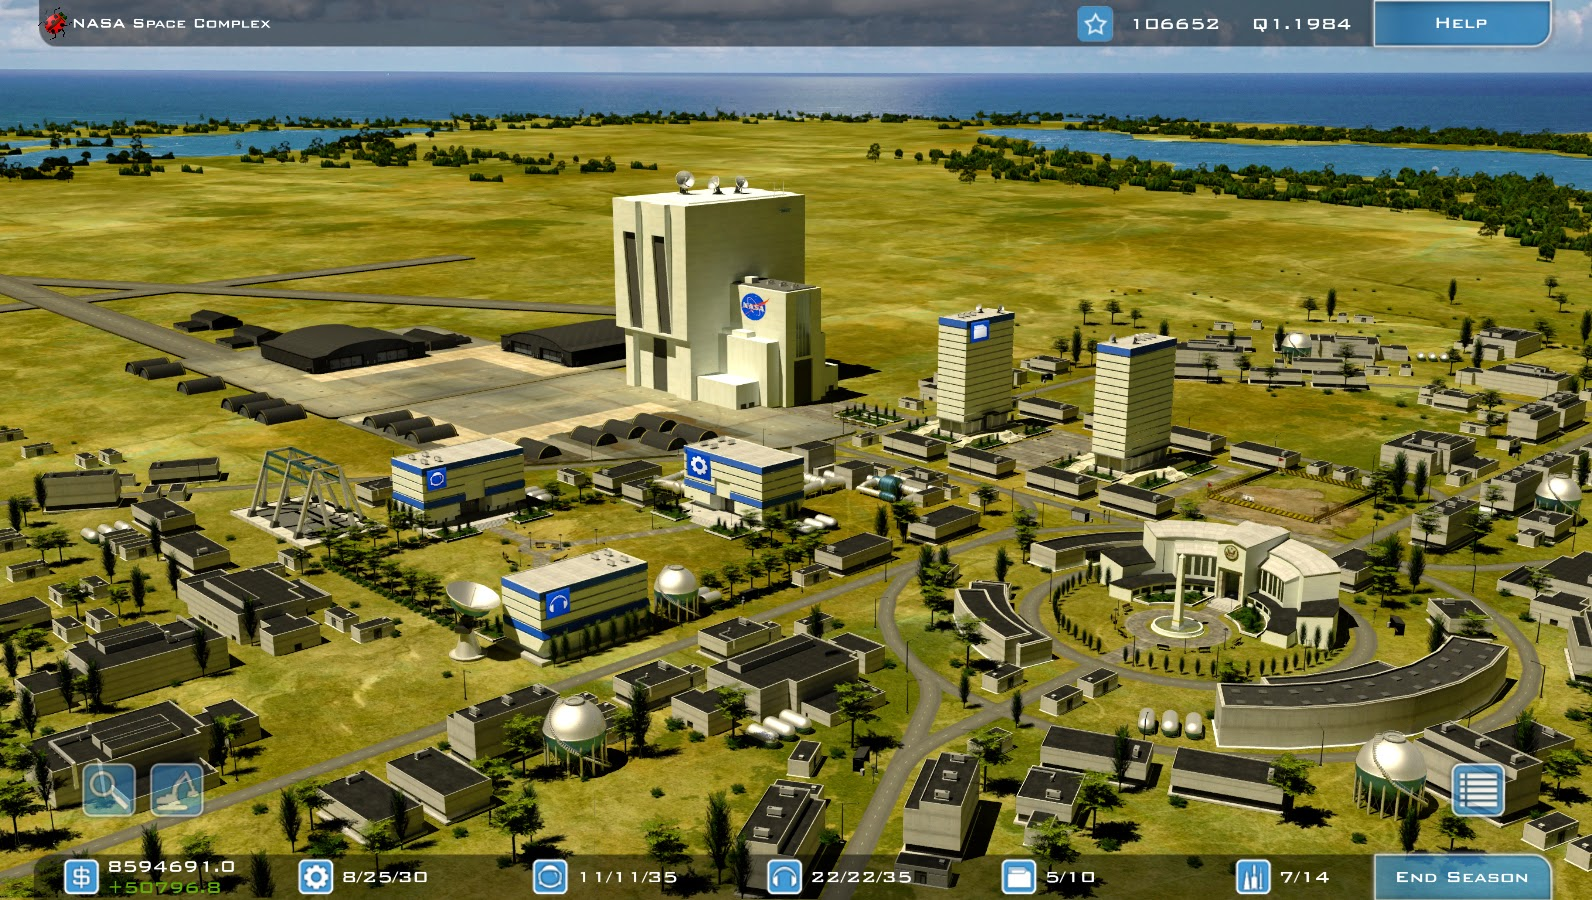 Buzz Aldrin's Space Program Manager - PC Review - Chalgyr ...